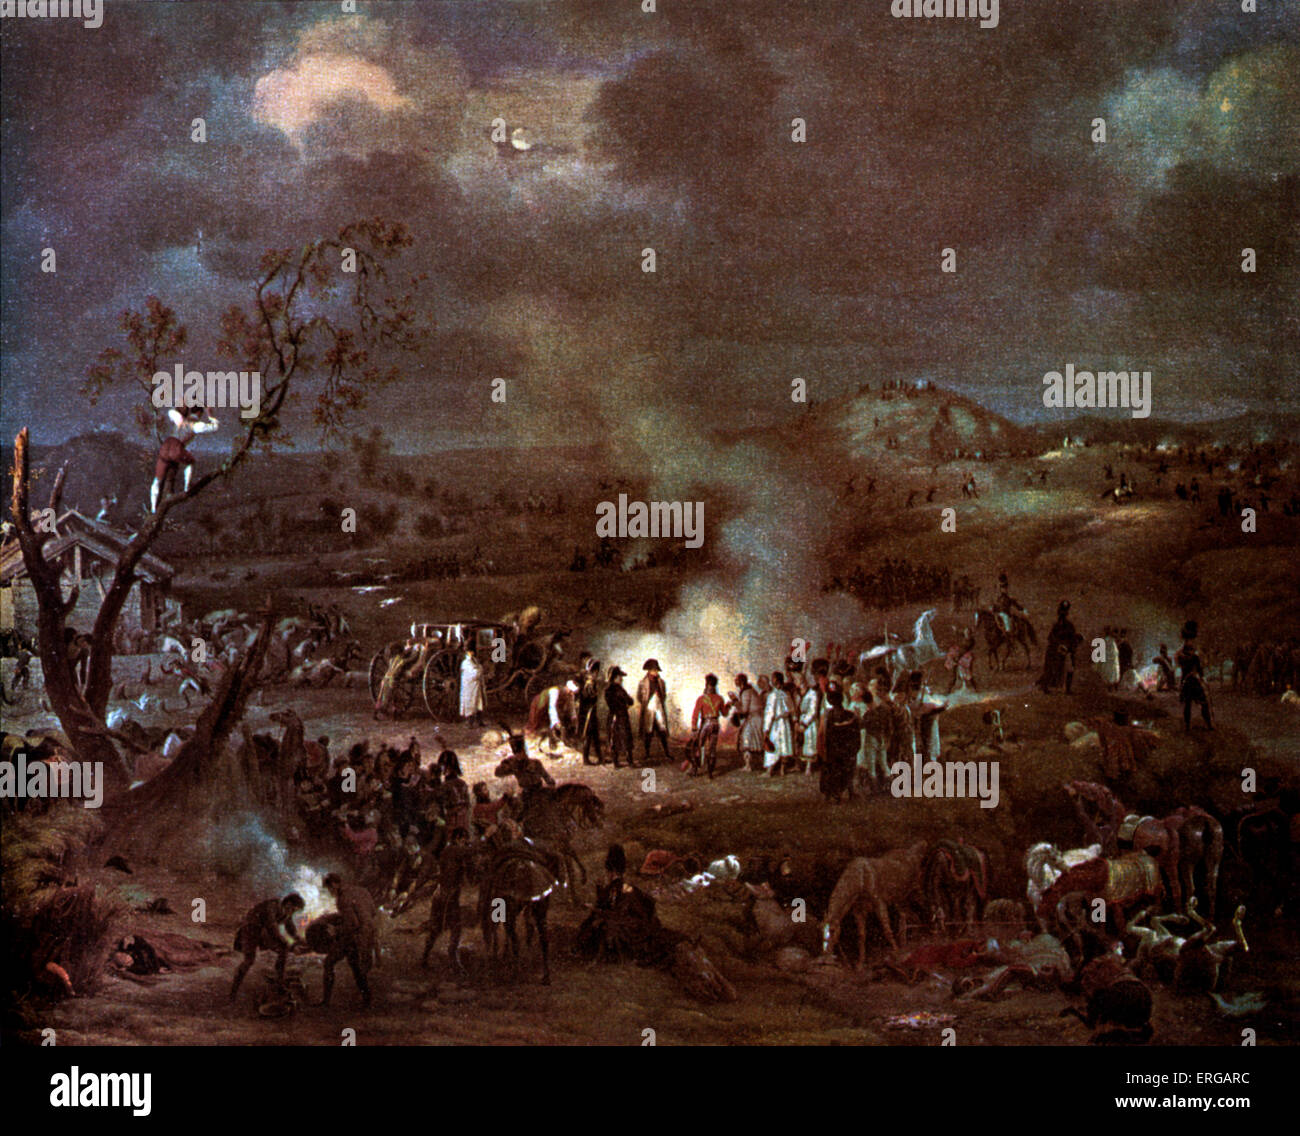 Napoleon I 's camp on the eve of the  Battle of Austerlitz, 1805.( his carriage, a berline, to left of group) - Stock Image